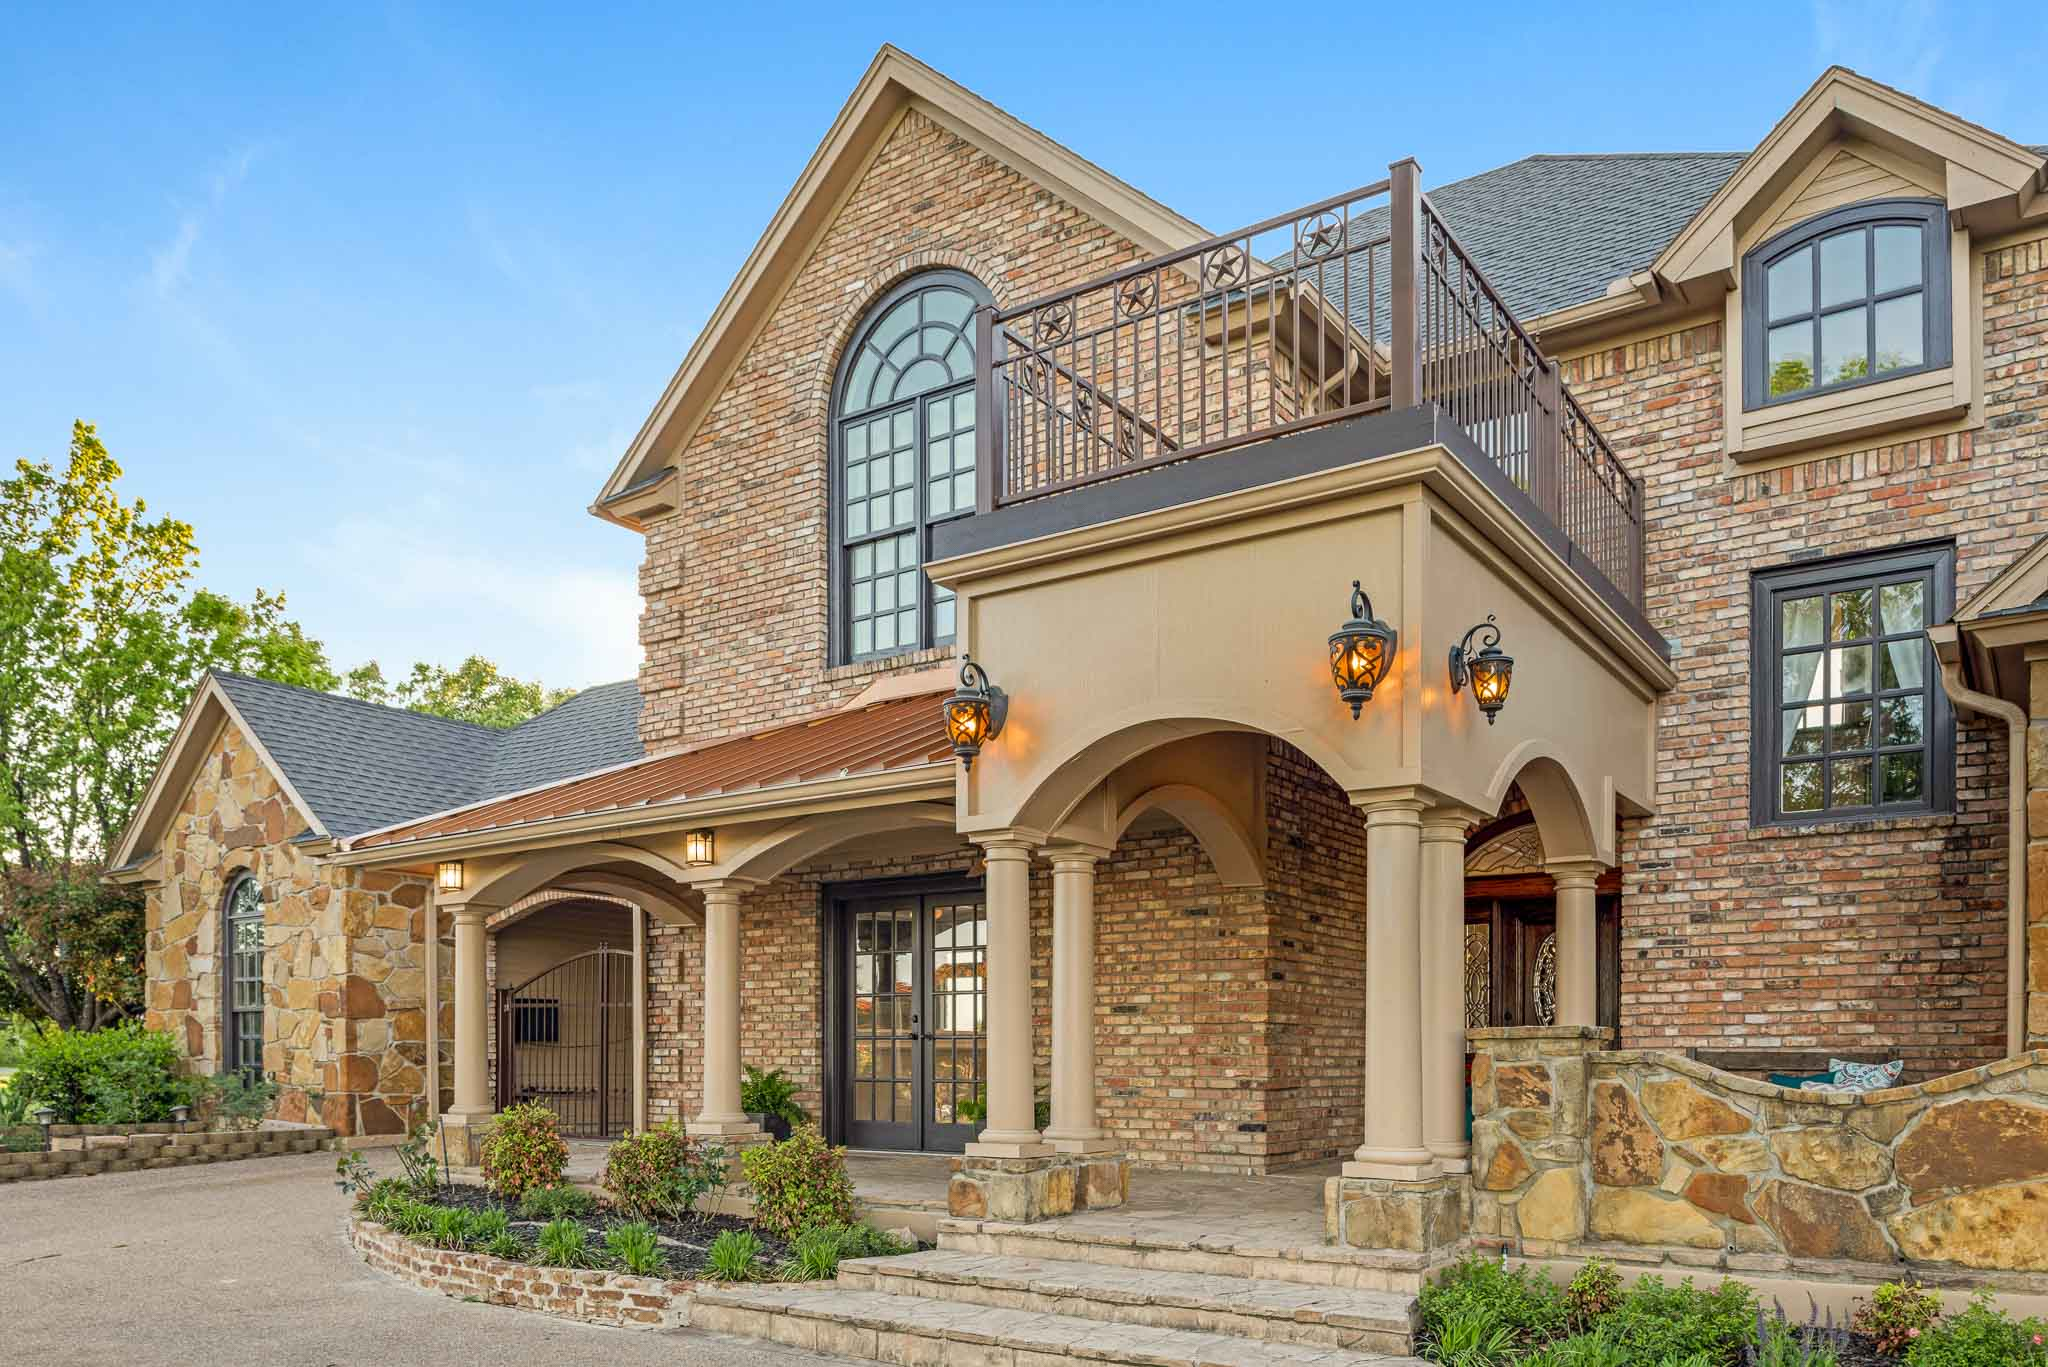 Fort Worth home for sale near, traditional architecture